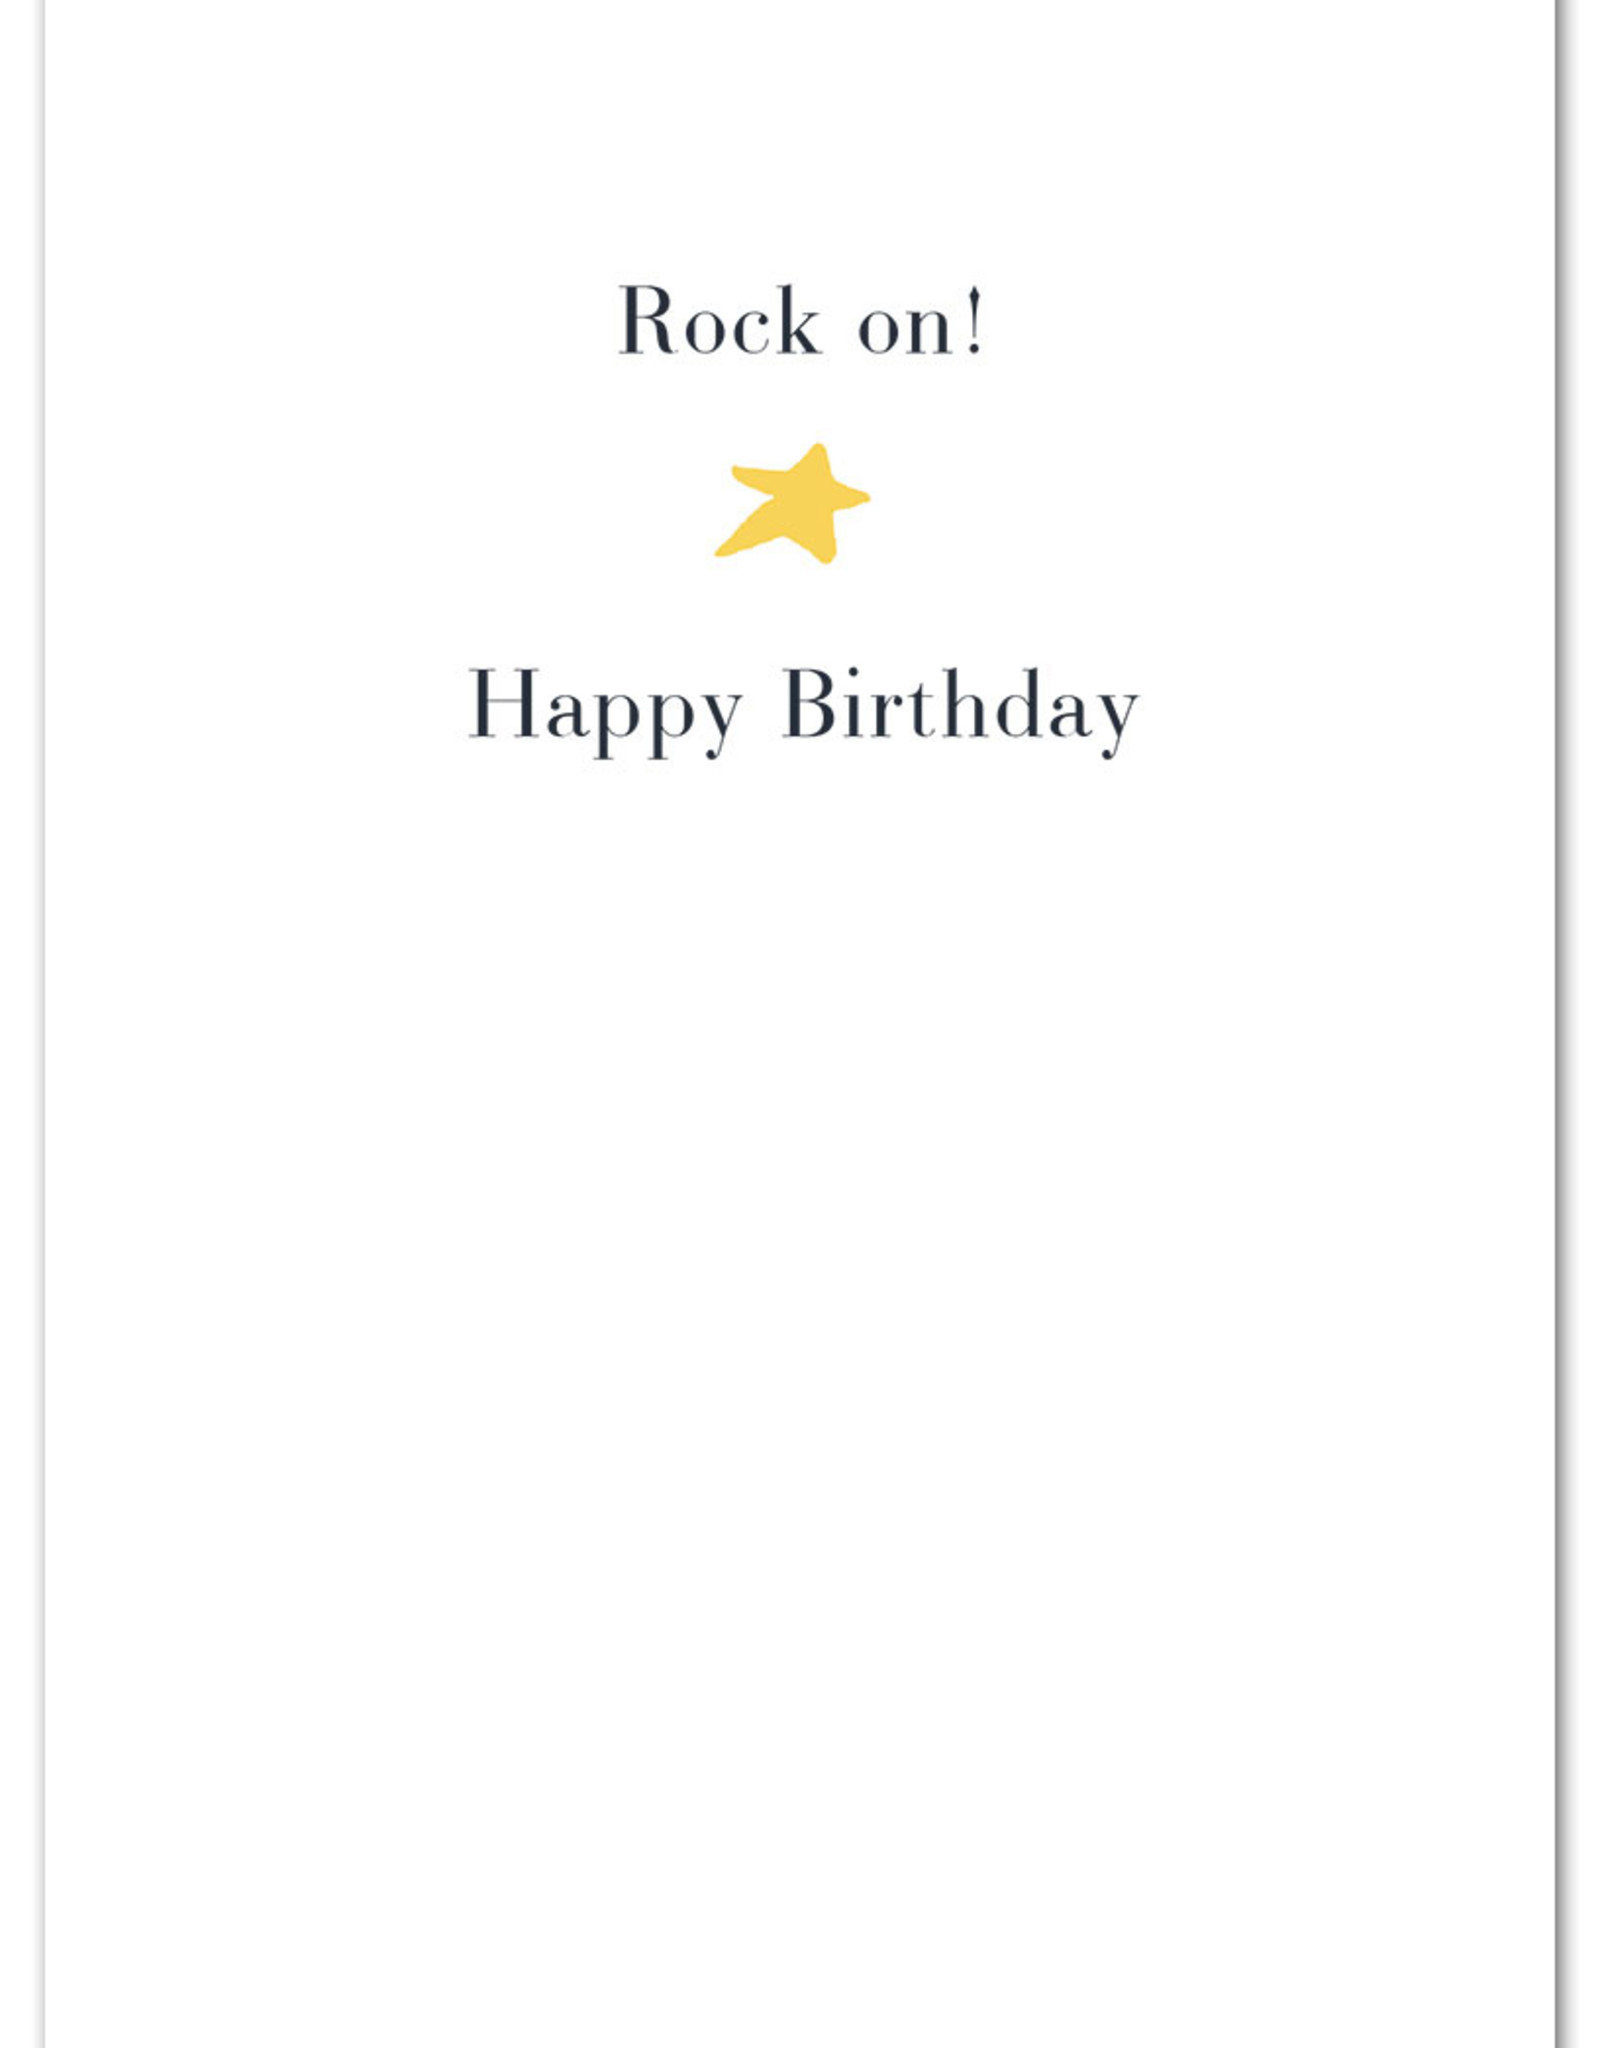 Cardthartic Cardthartic - Rock Star Birthday Card